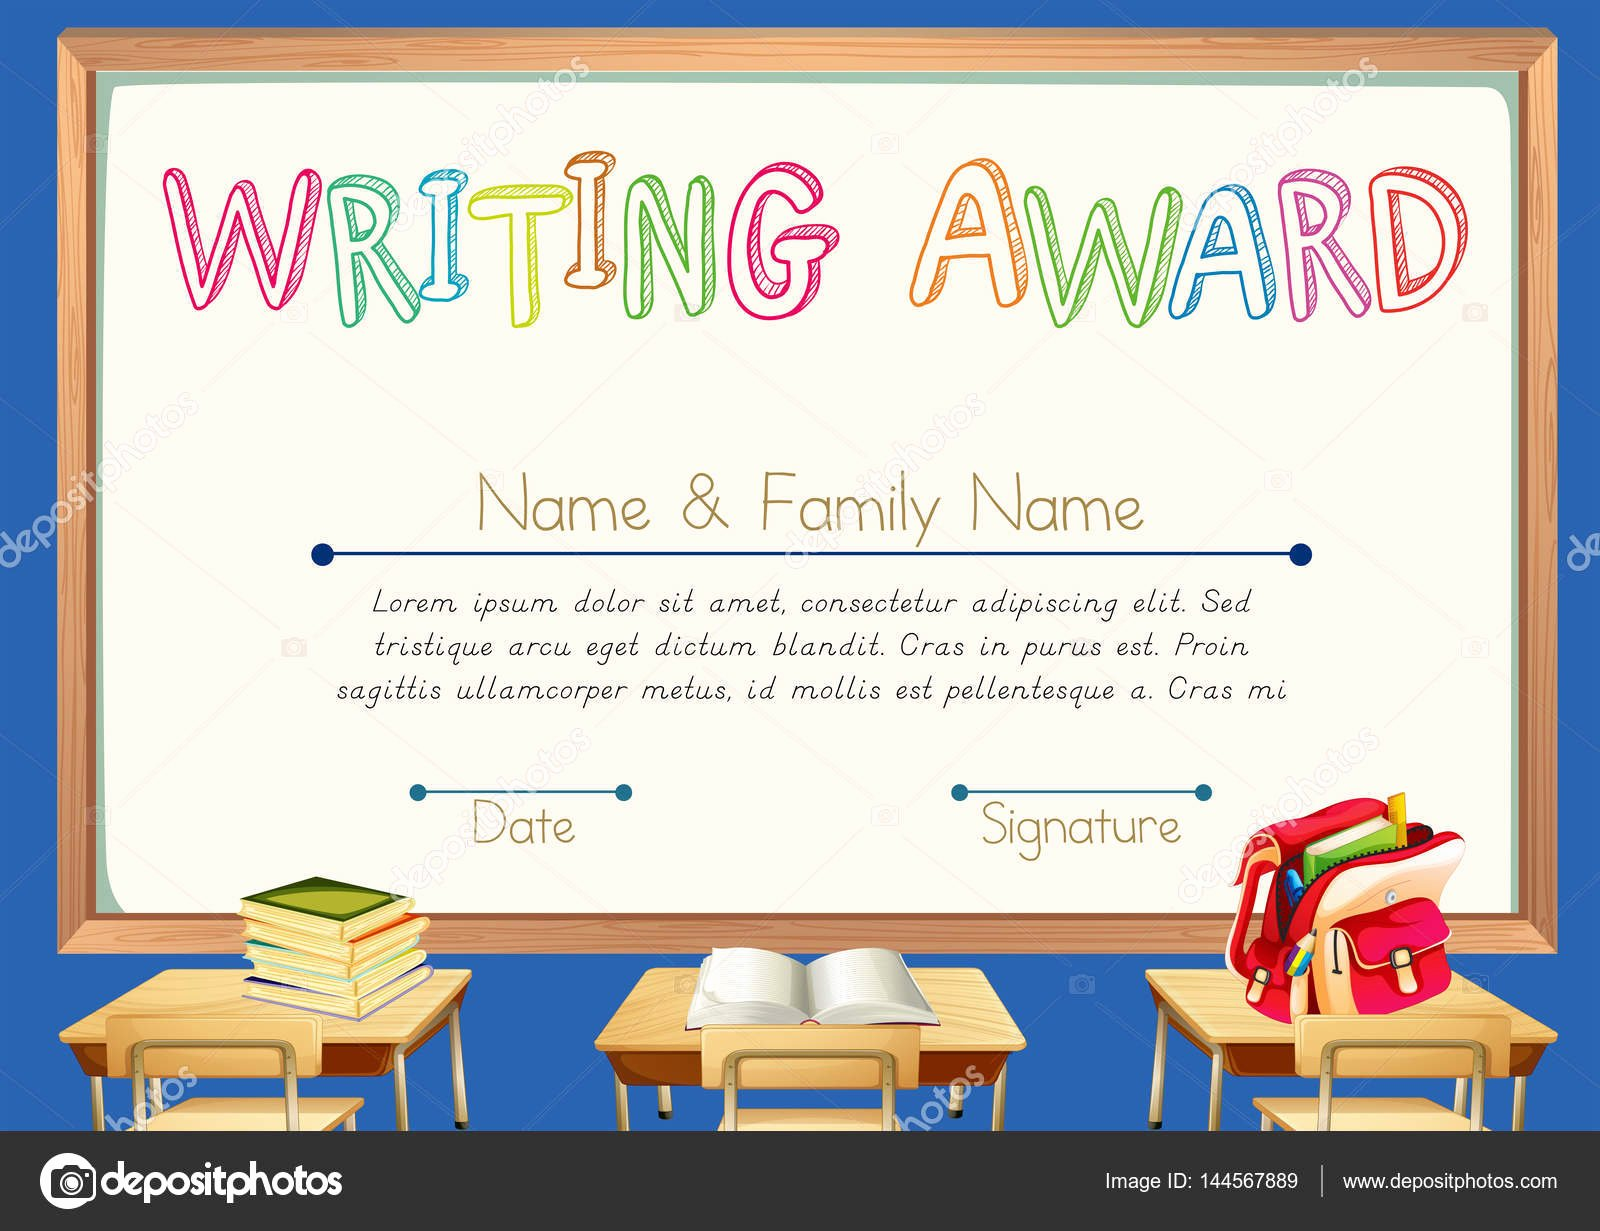 Writing Award Certificate Template Lovely Writing Award with Classroom Background — Stock Vector